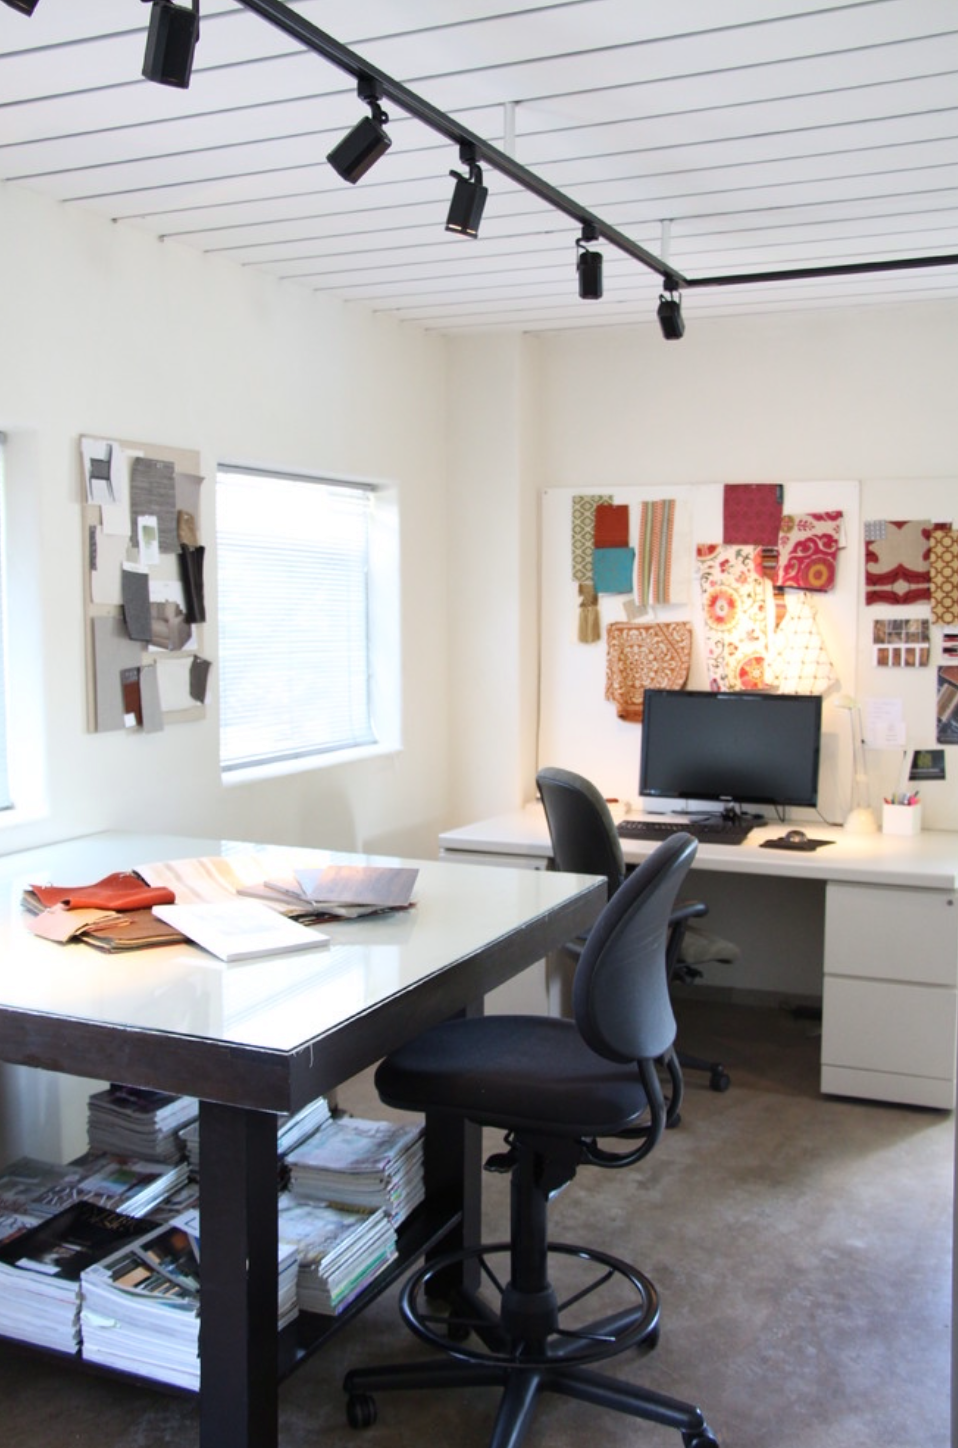 Peek inside Lori Dennis' design studio